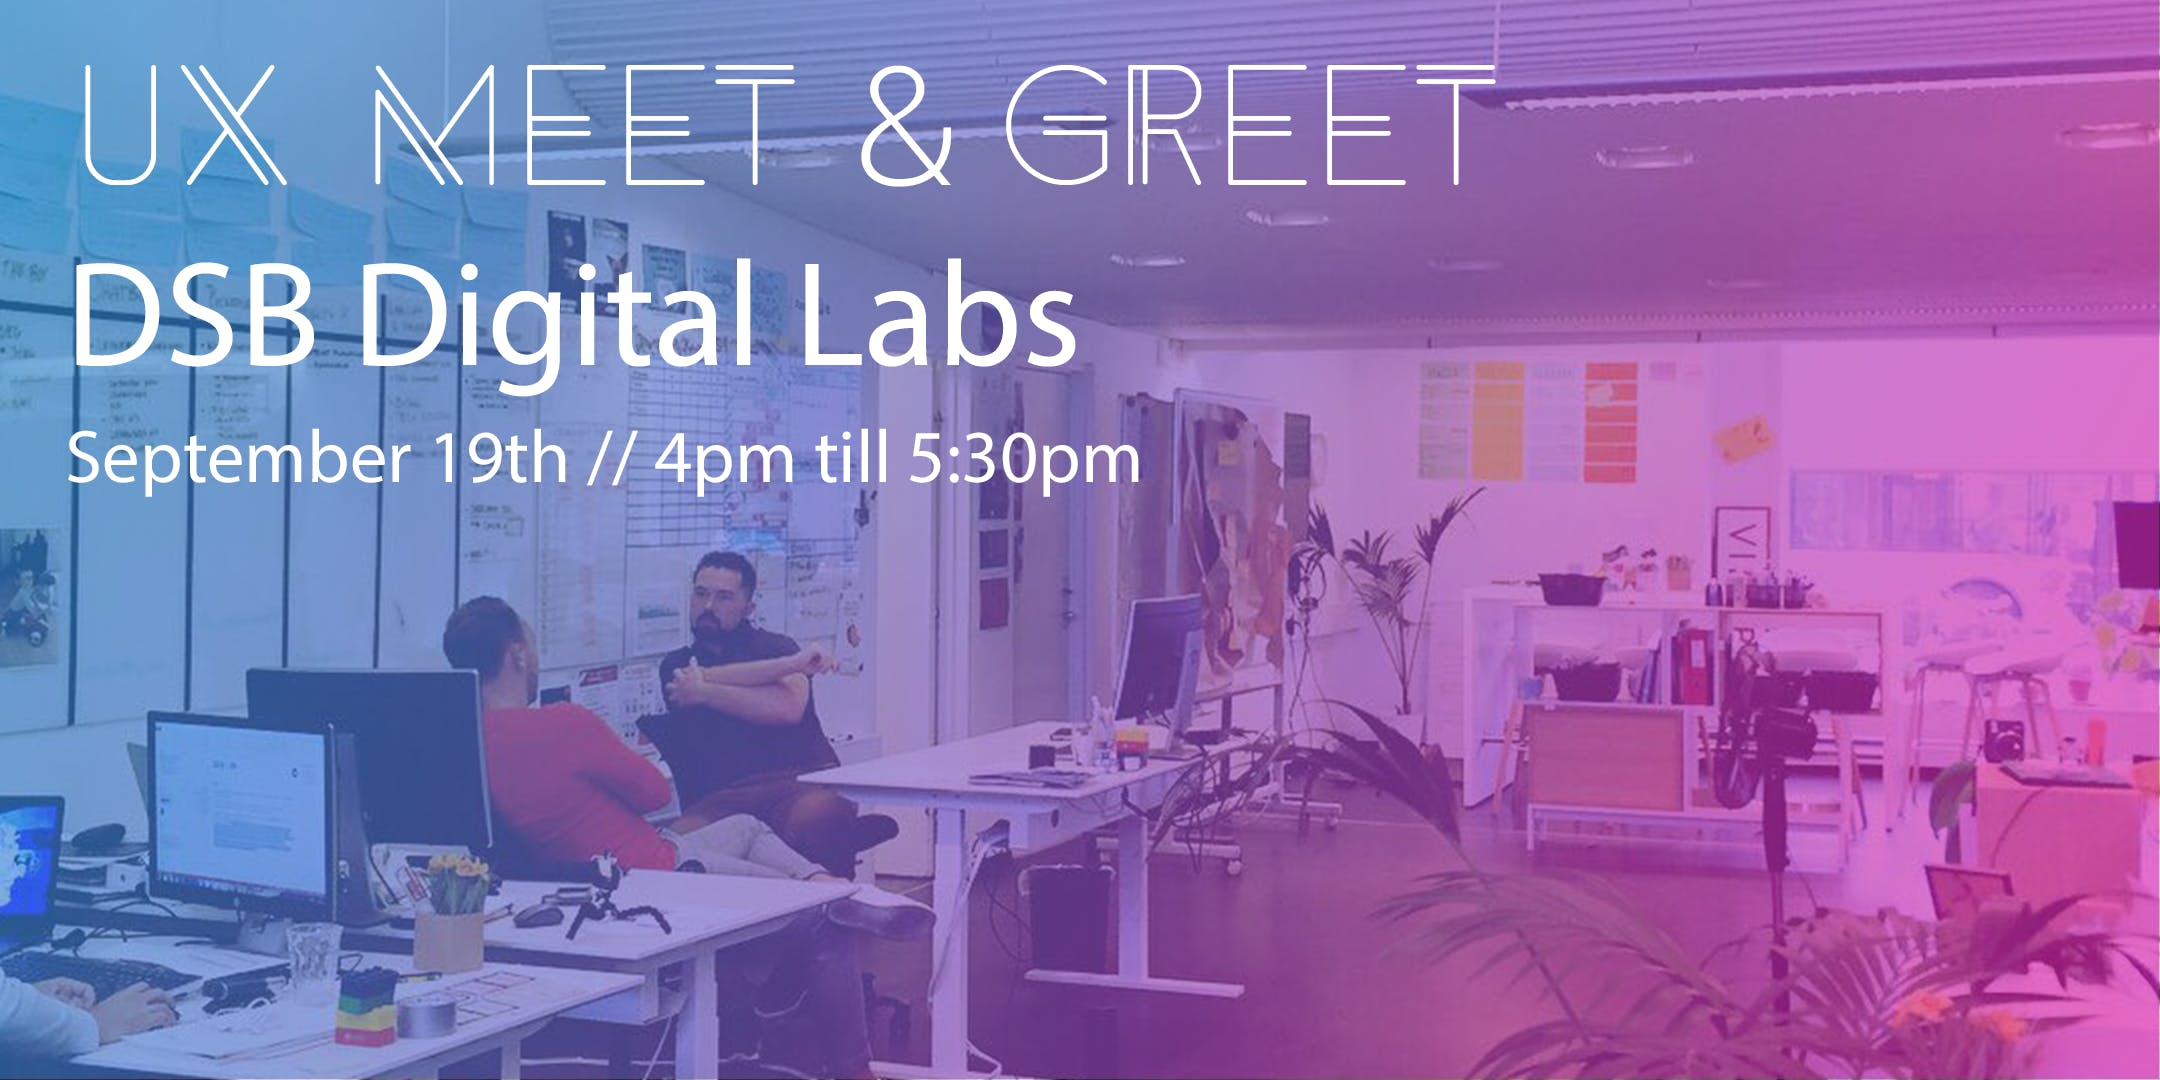 UX Meet & Greet at DSB Digital Labs